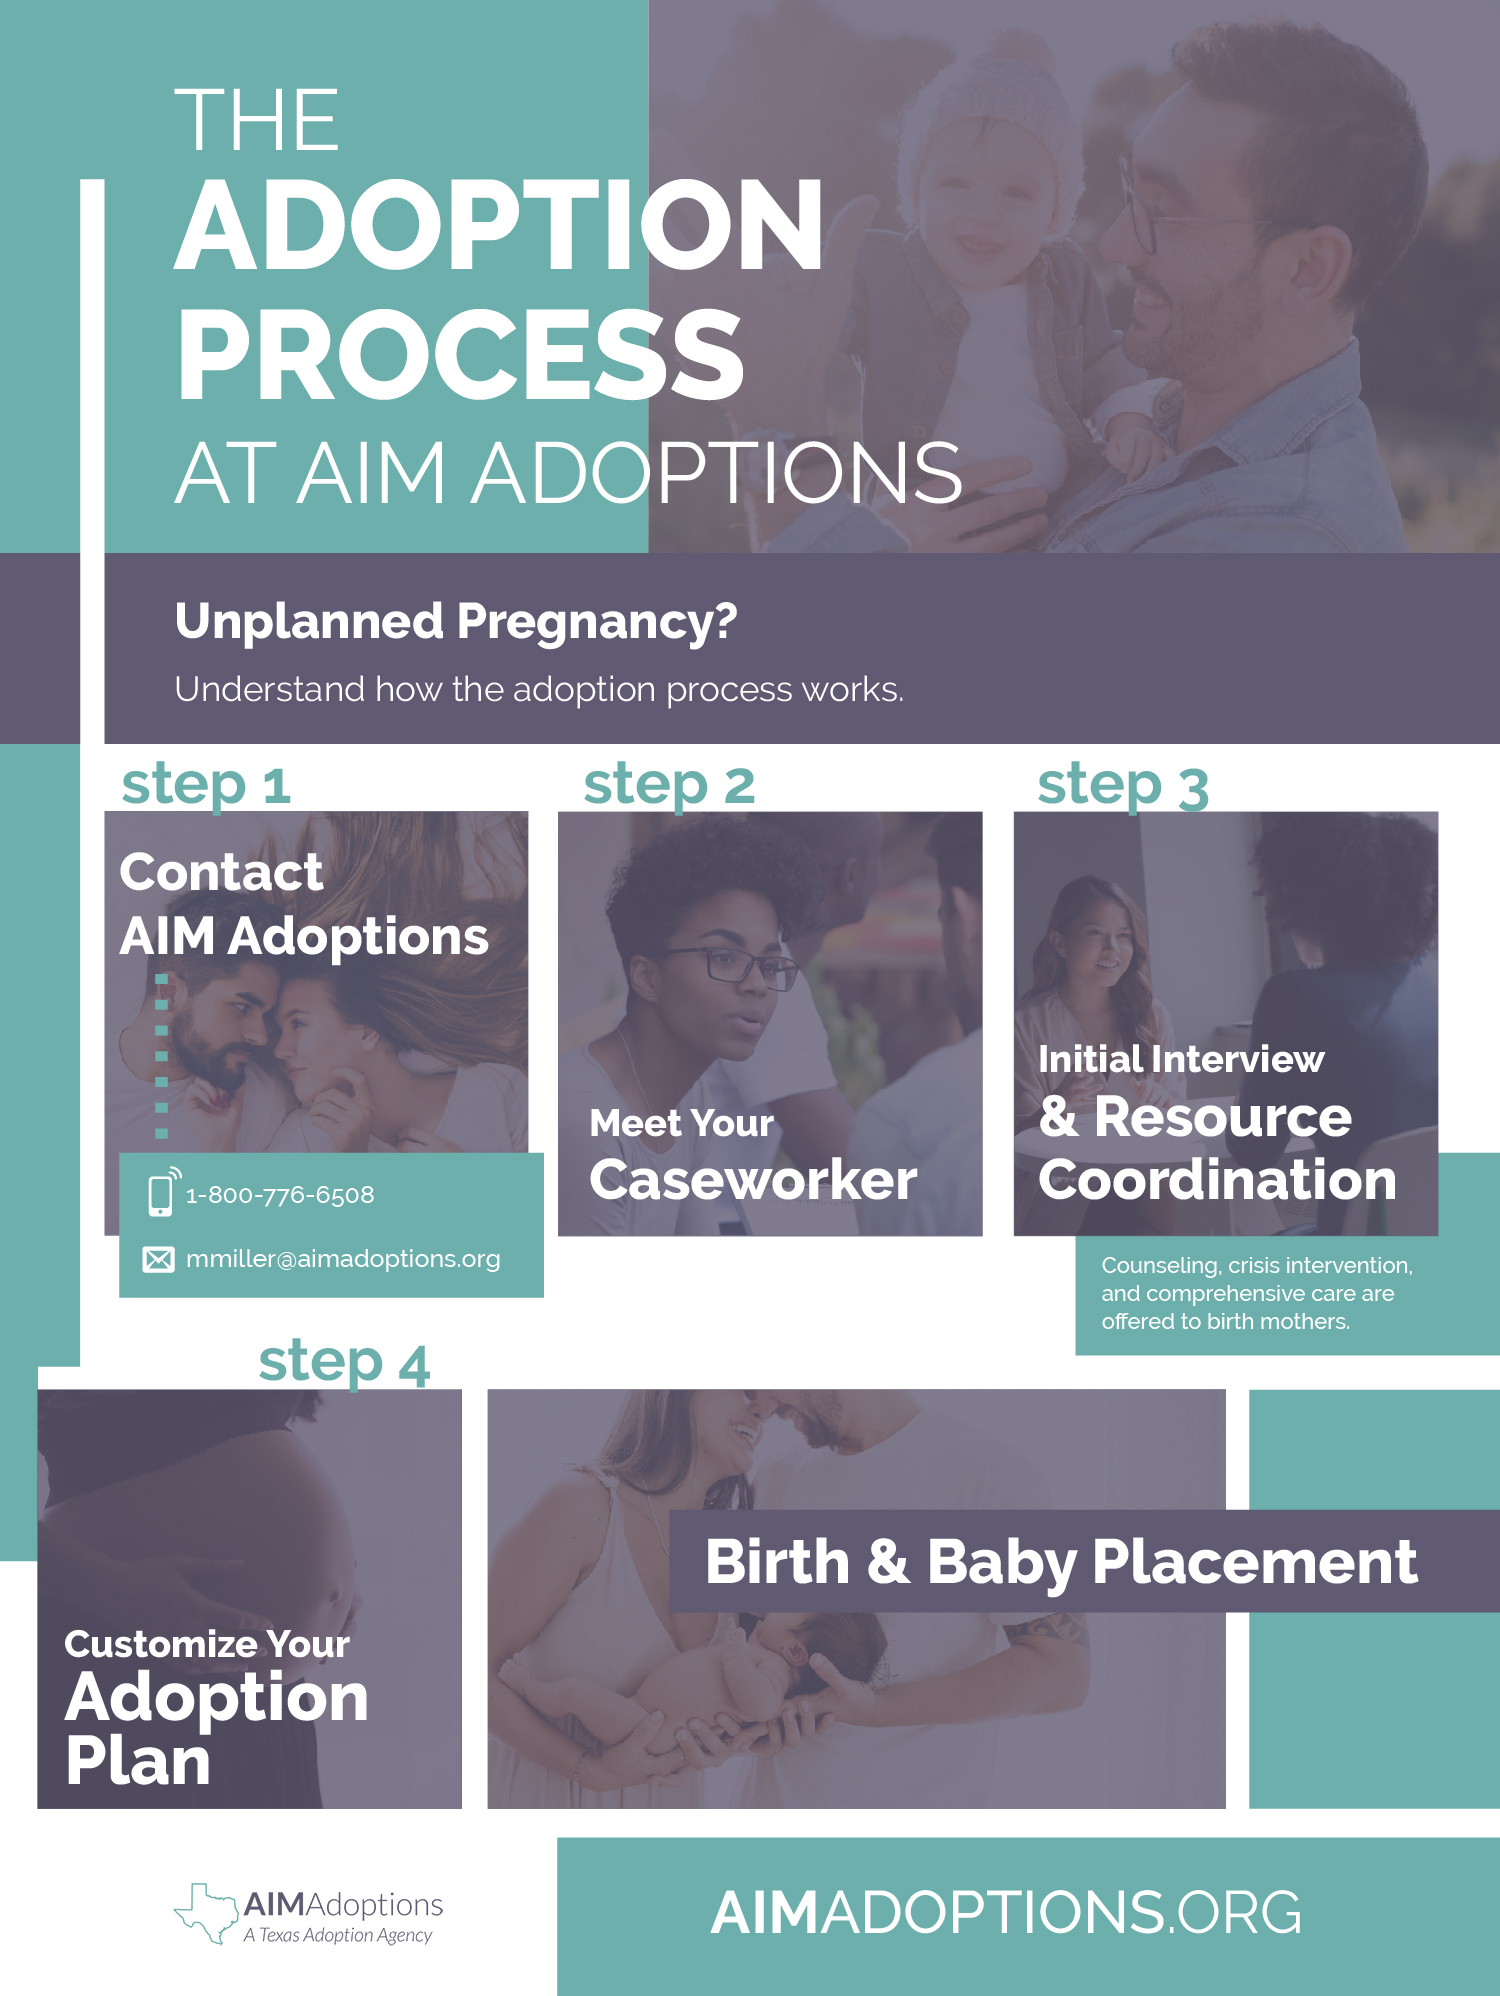 The Adoption Process for Unplanned Pregnancy